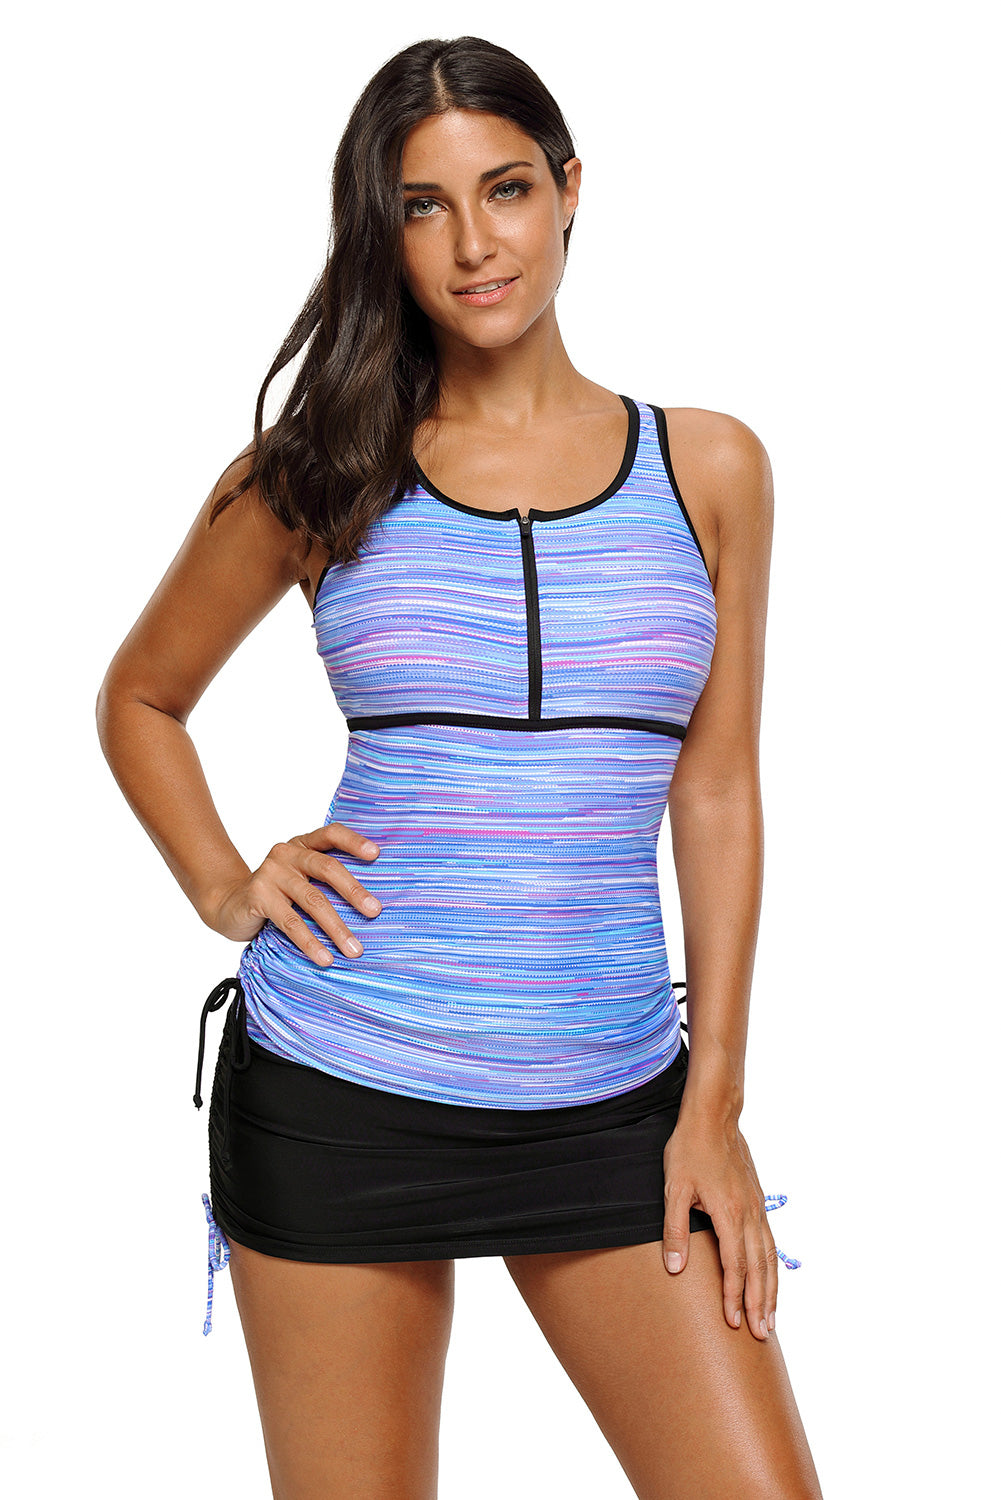 Purplish Filtered Stripe Mesh Racherback Tankini Swimsuit Tankinis Discount Designer Fashion Clothes Shoes Bags Women Men Kids Children Black Owned Business